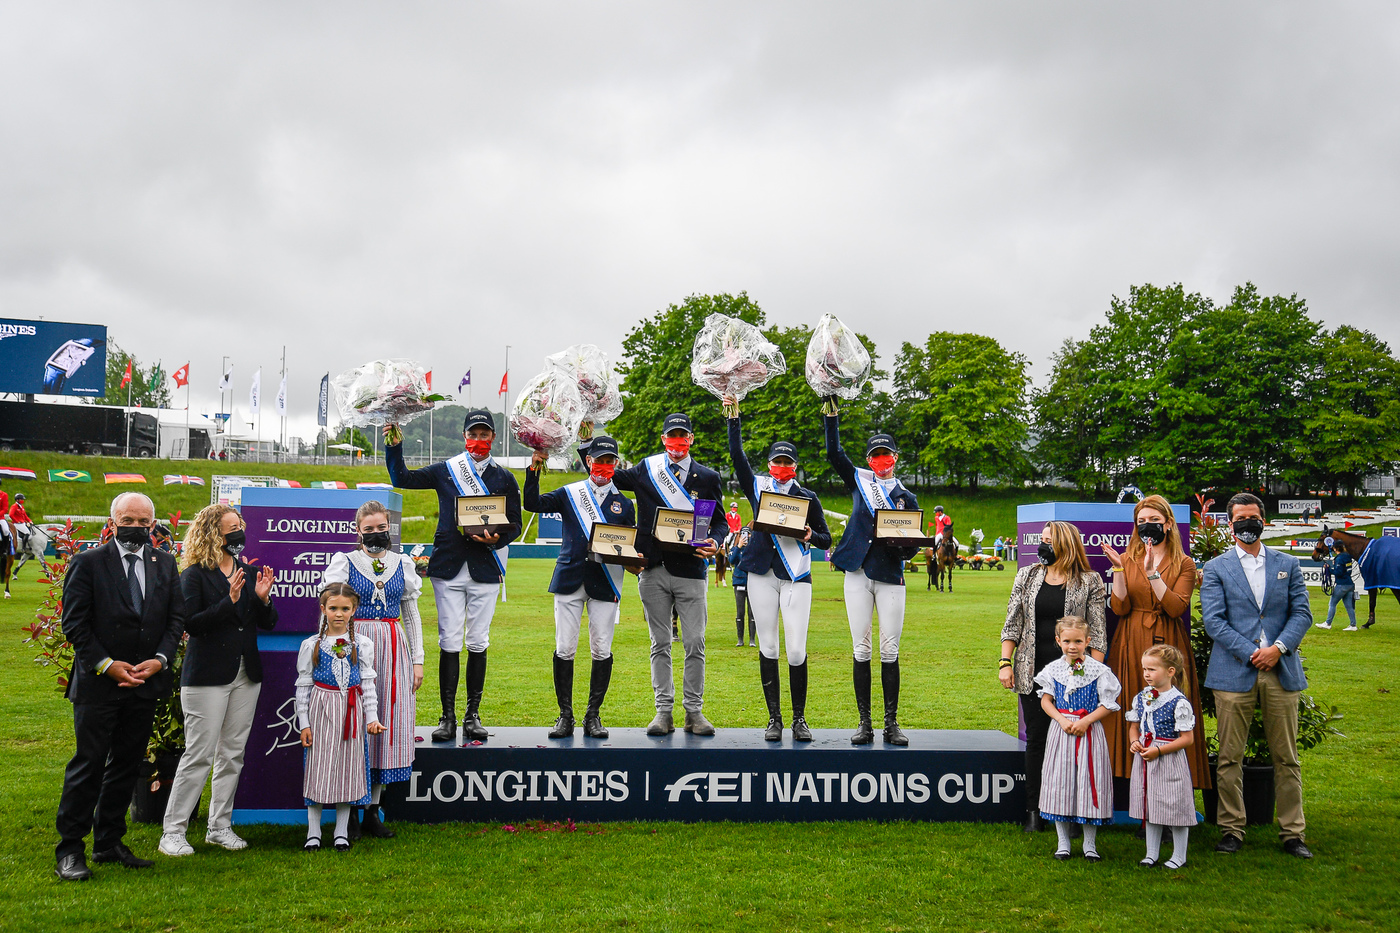 Longines Show Jumping Event: Four days of captivating competitions and exceptional performances for  the Longines CSIO St.Gallen  5